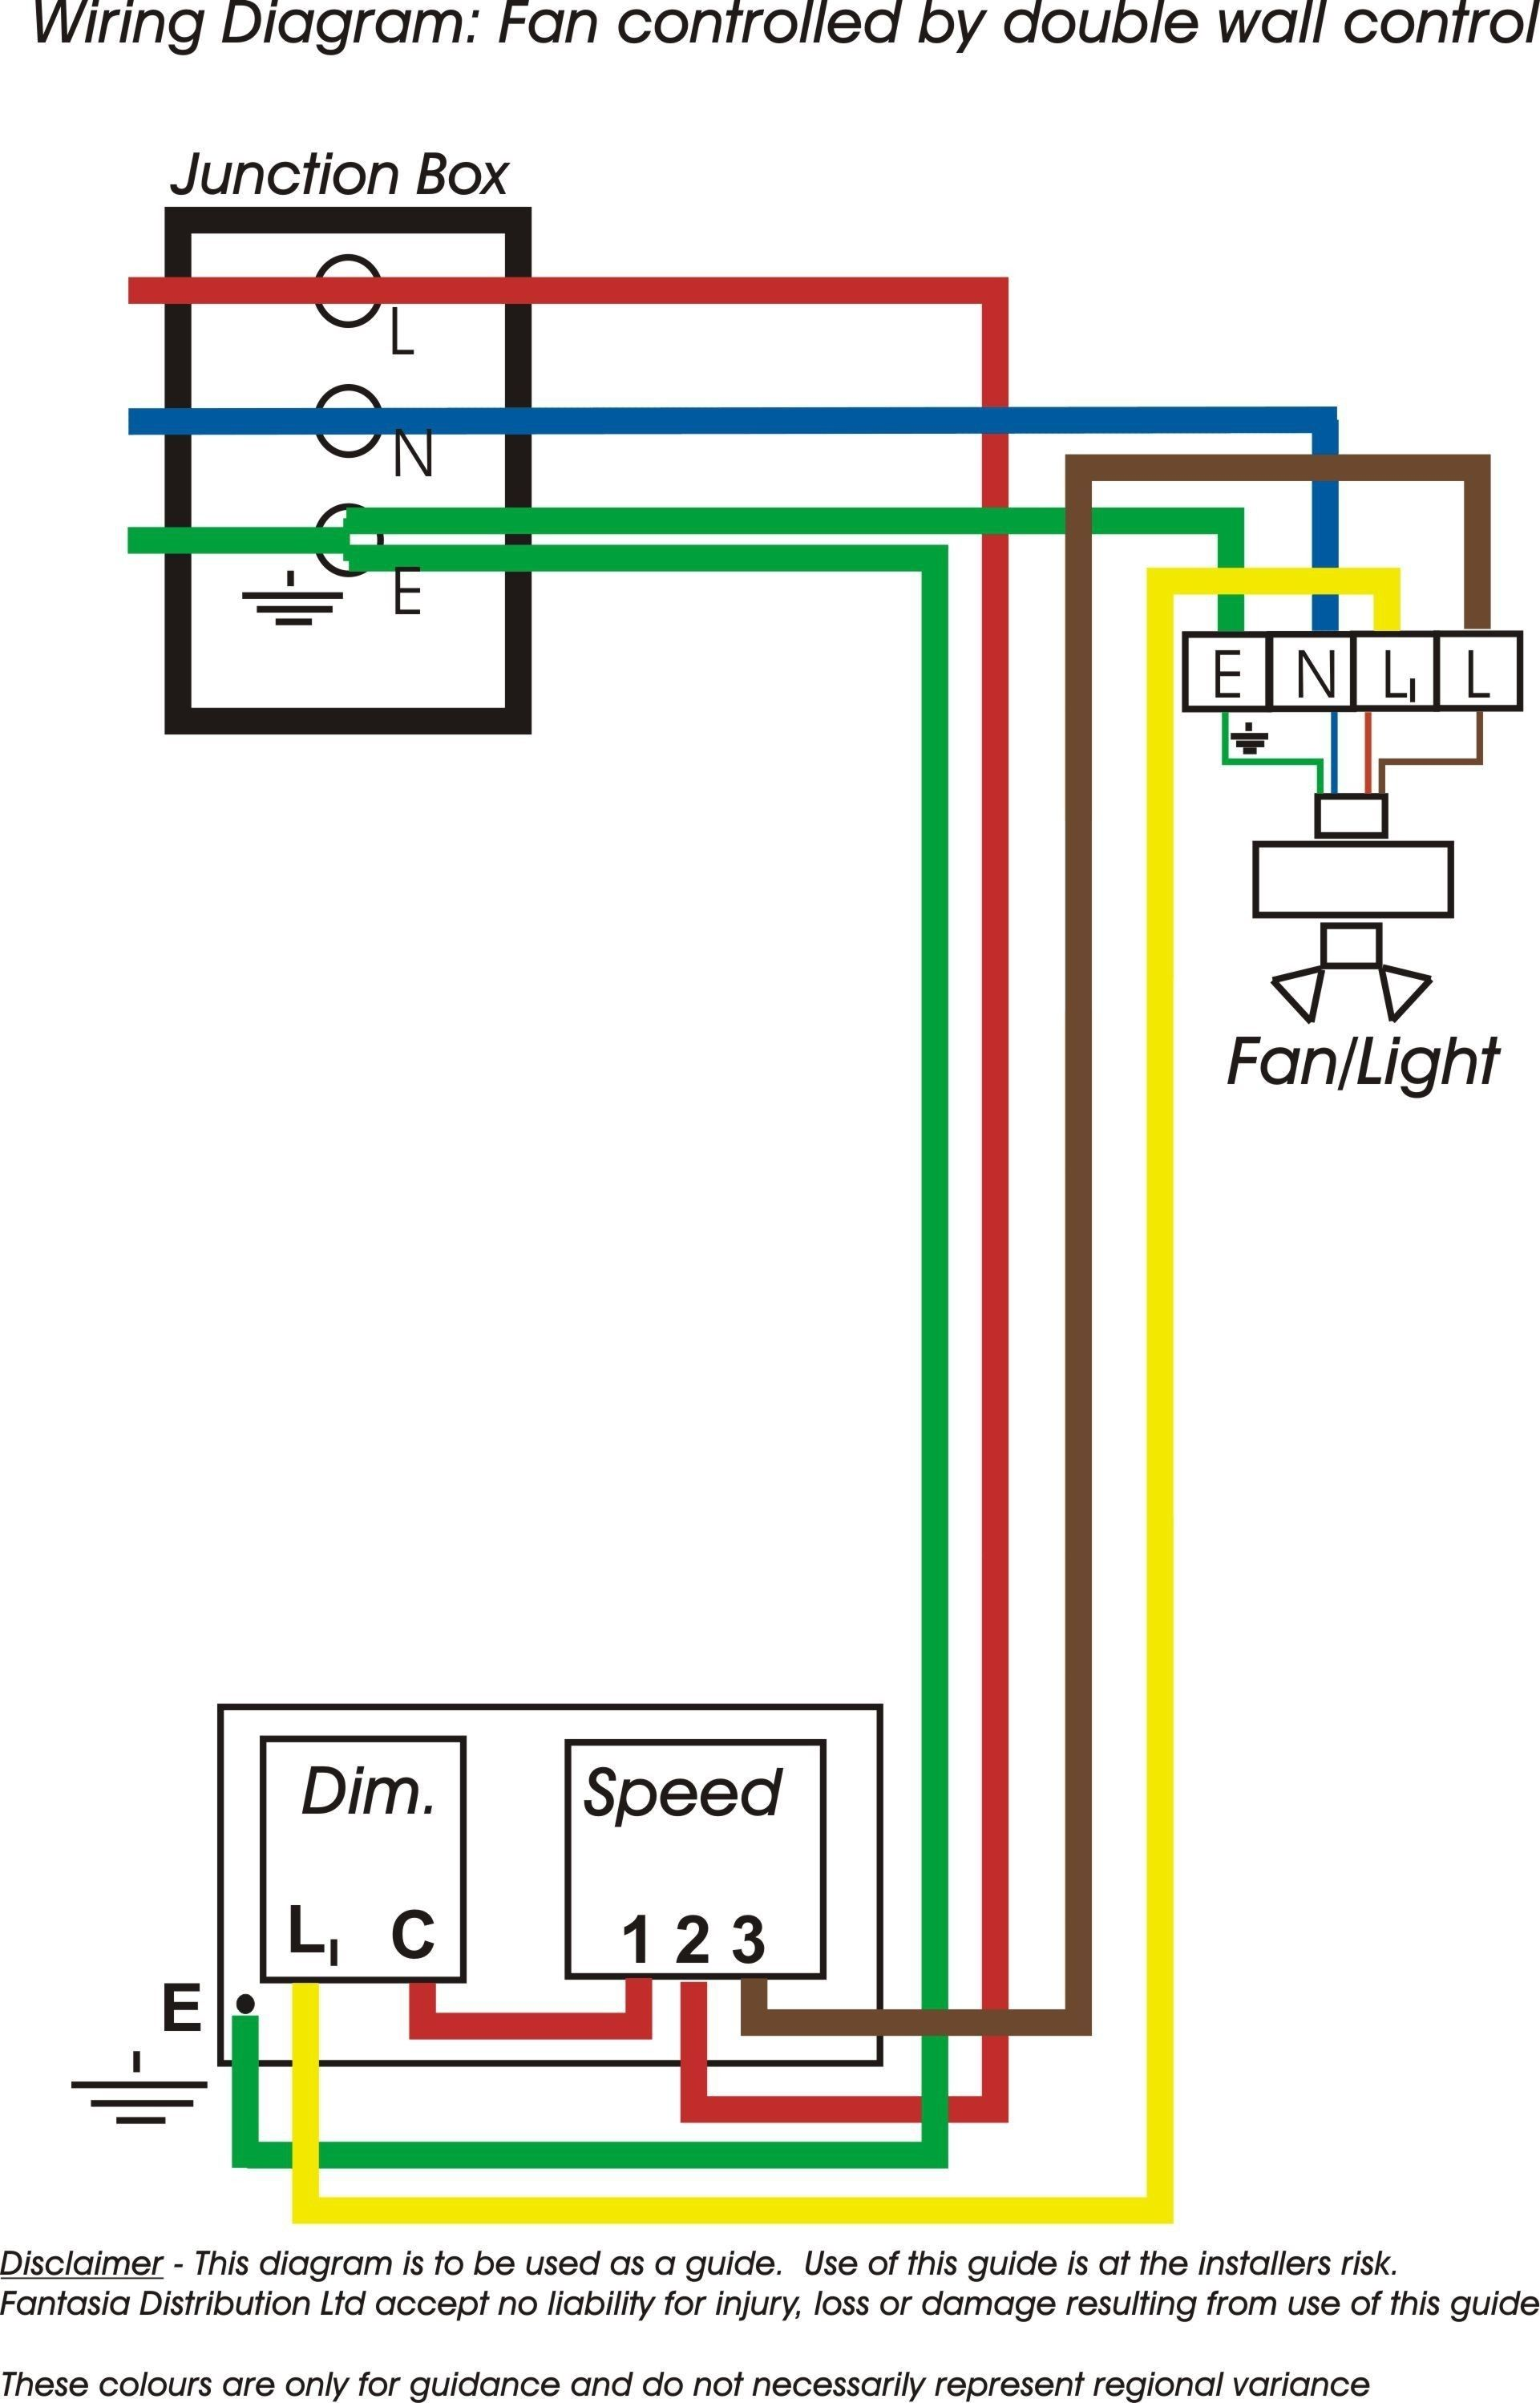 44 New Ceiling Fan Wiring Diagram with Regulator